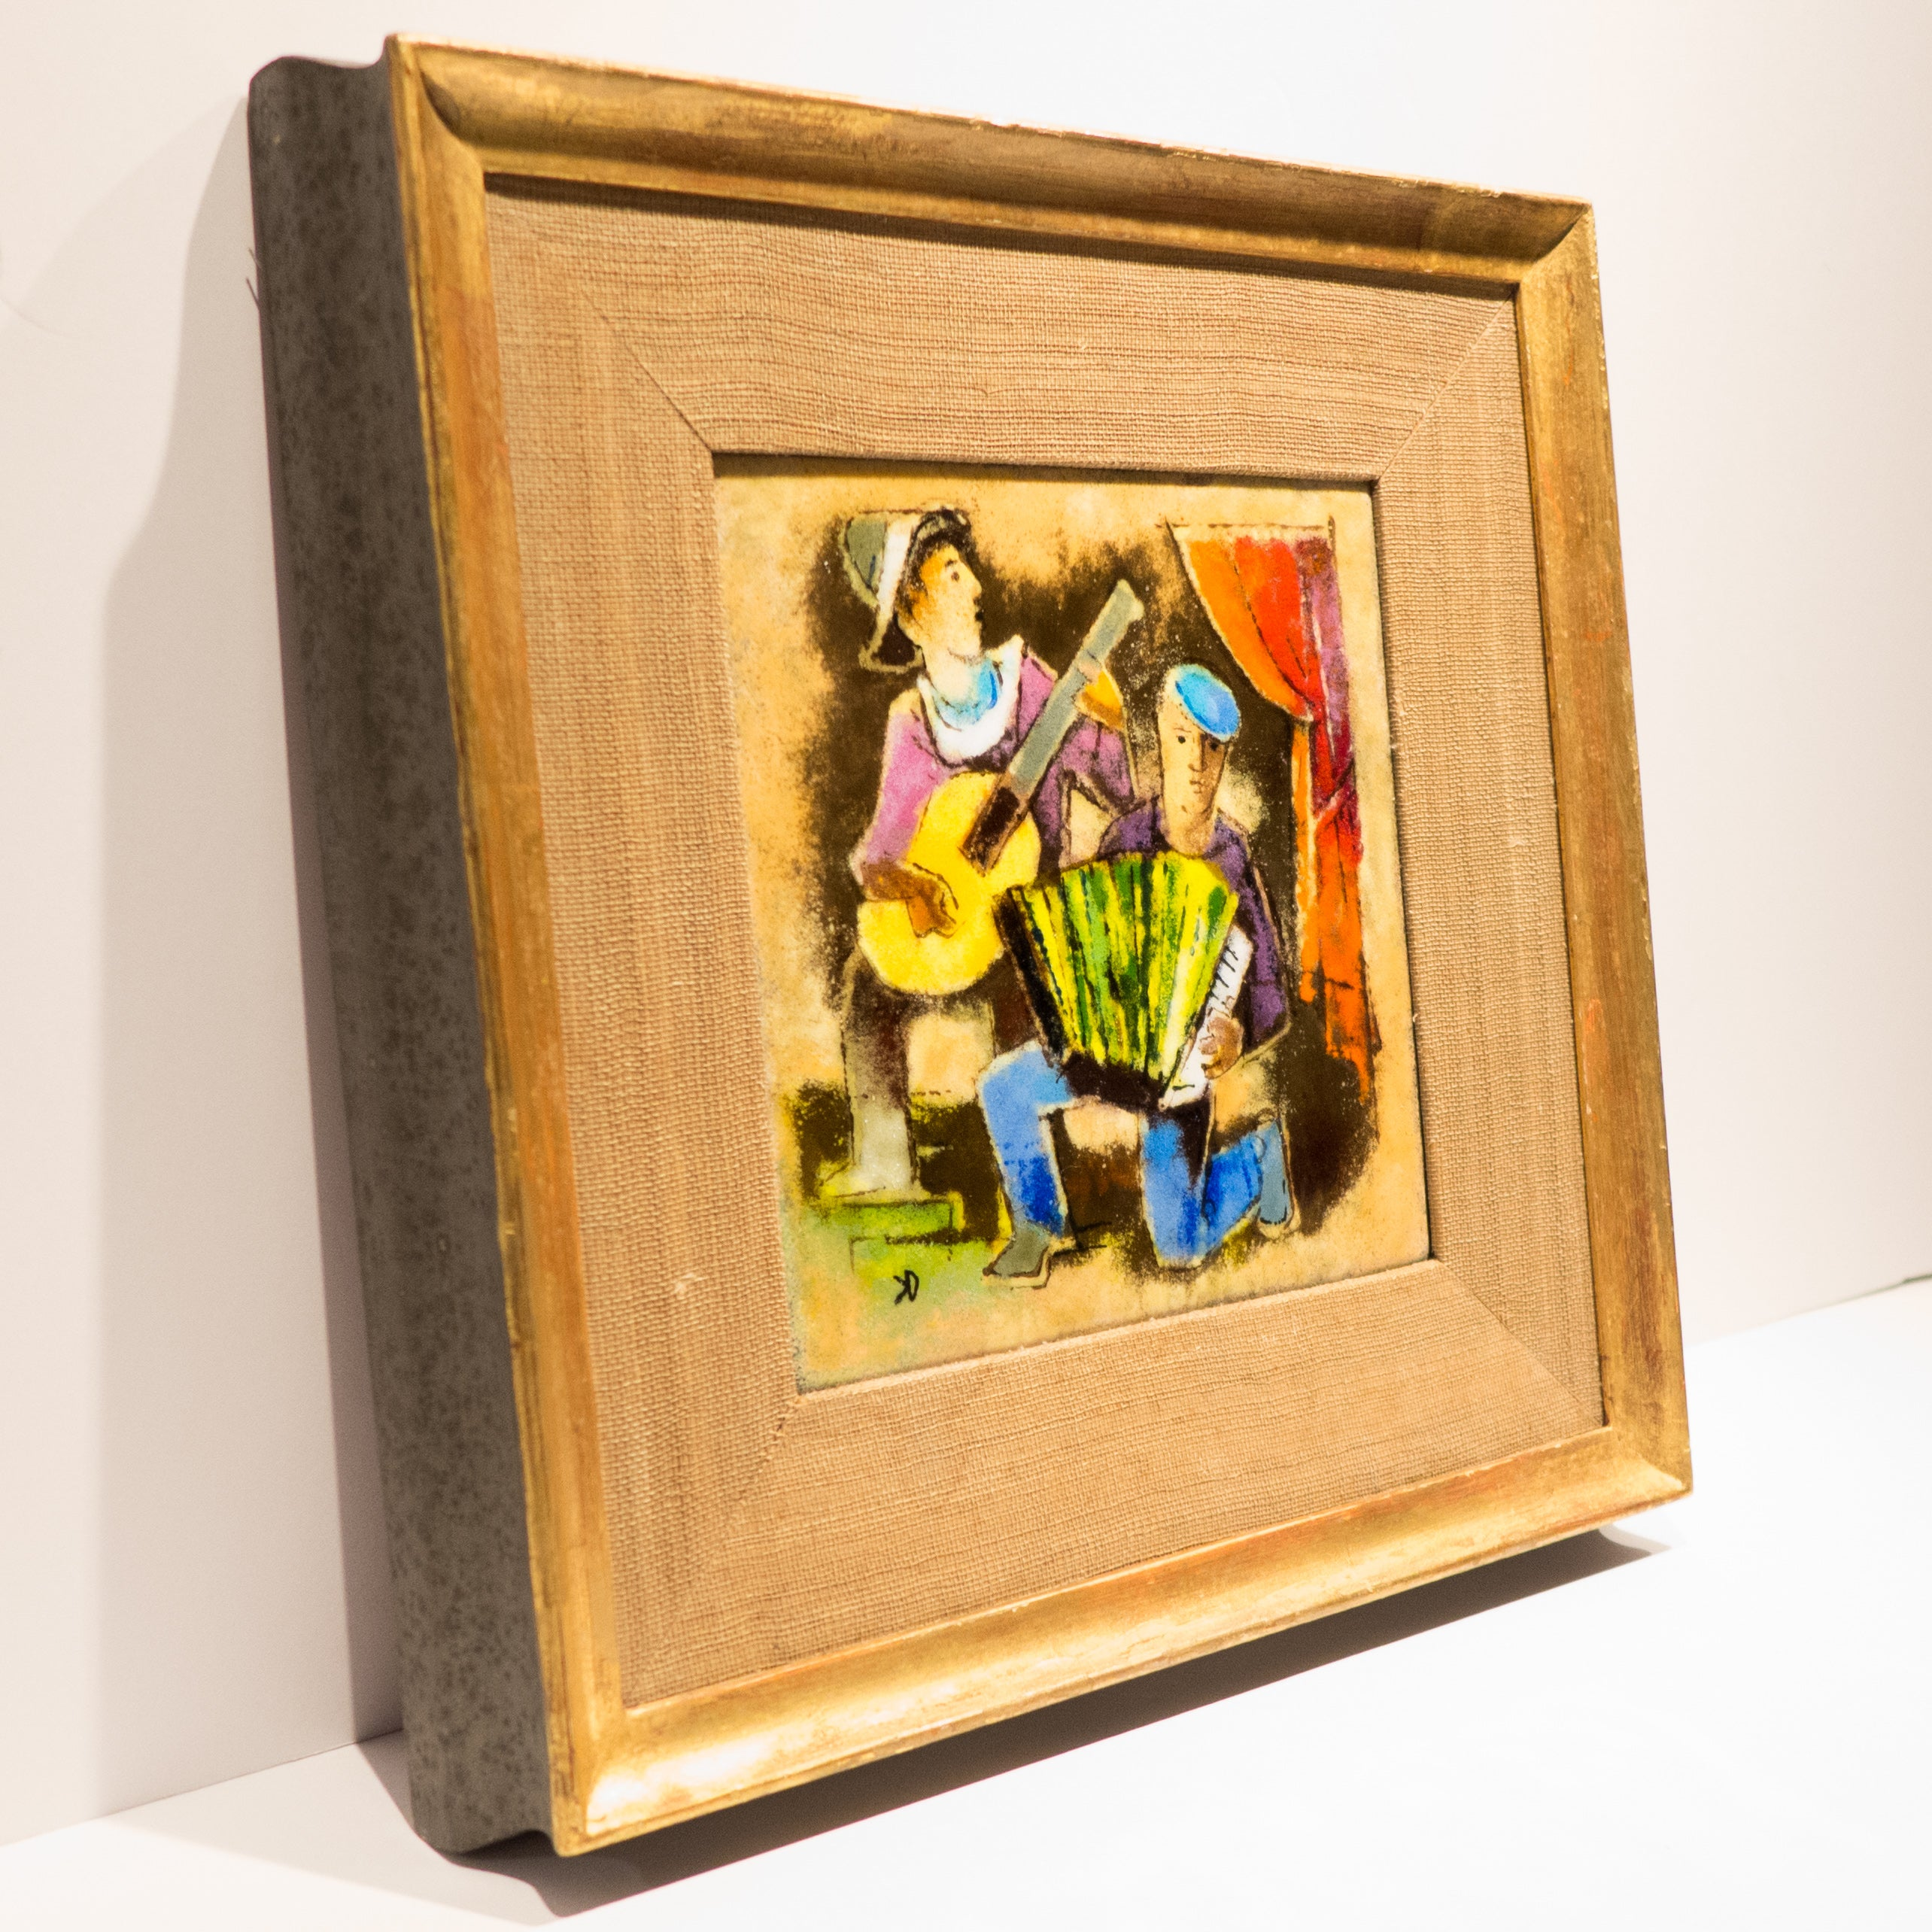 Karl Drerup Enamel Plaque in Frame For Sale at 1stdibs